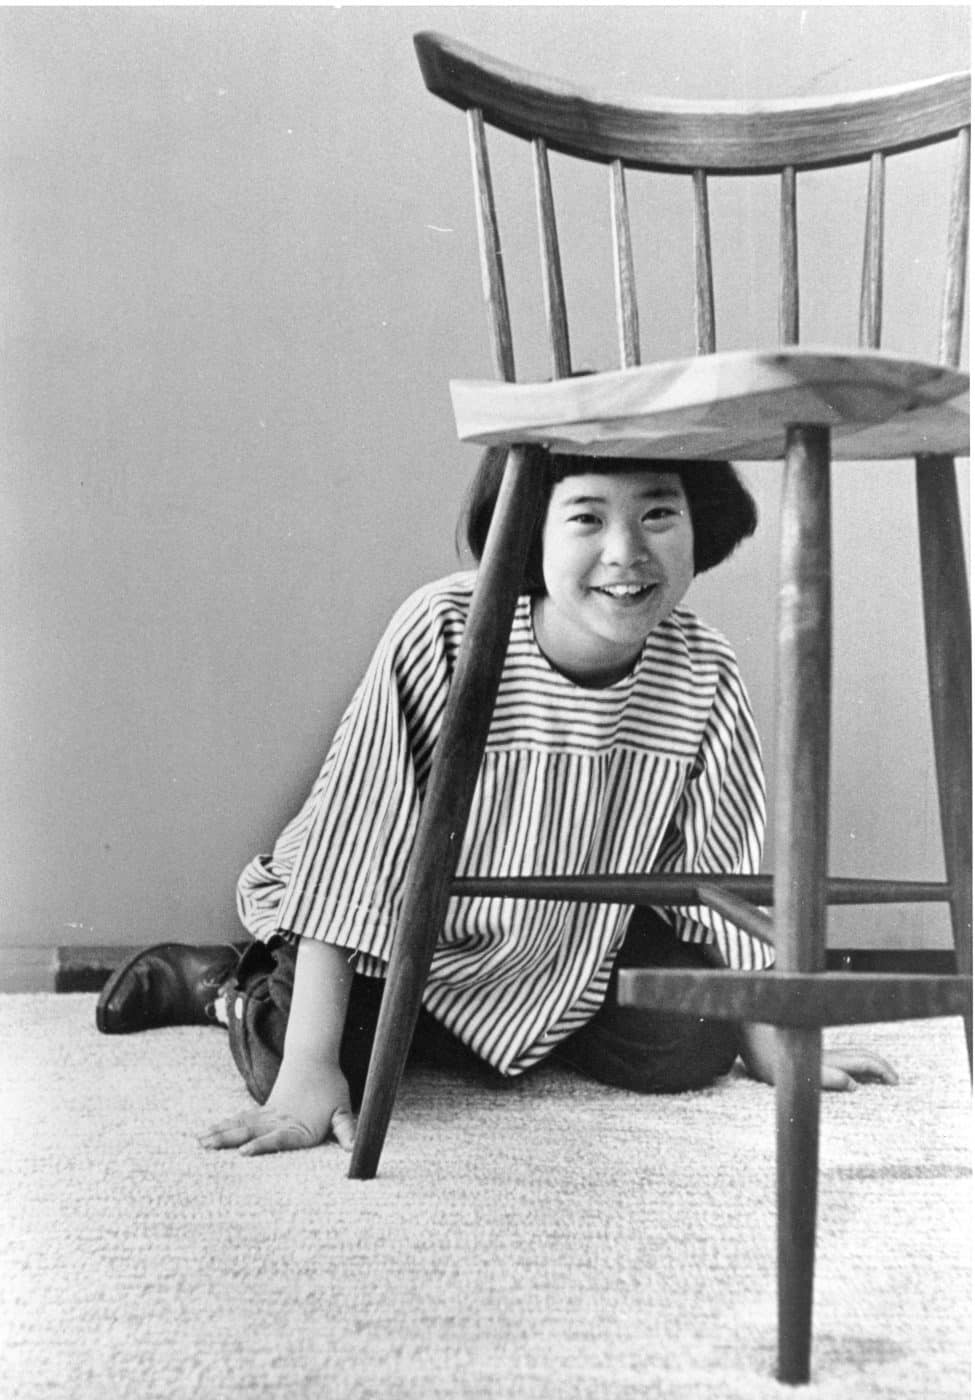 Mira with her namesake chair featured in Look magazine in 1952